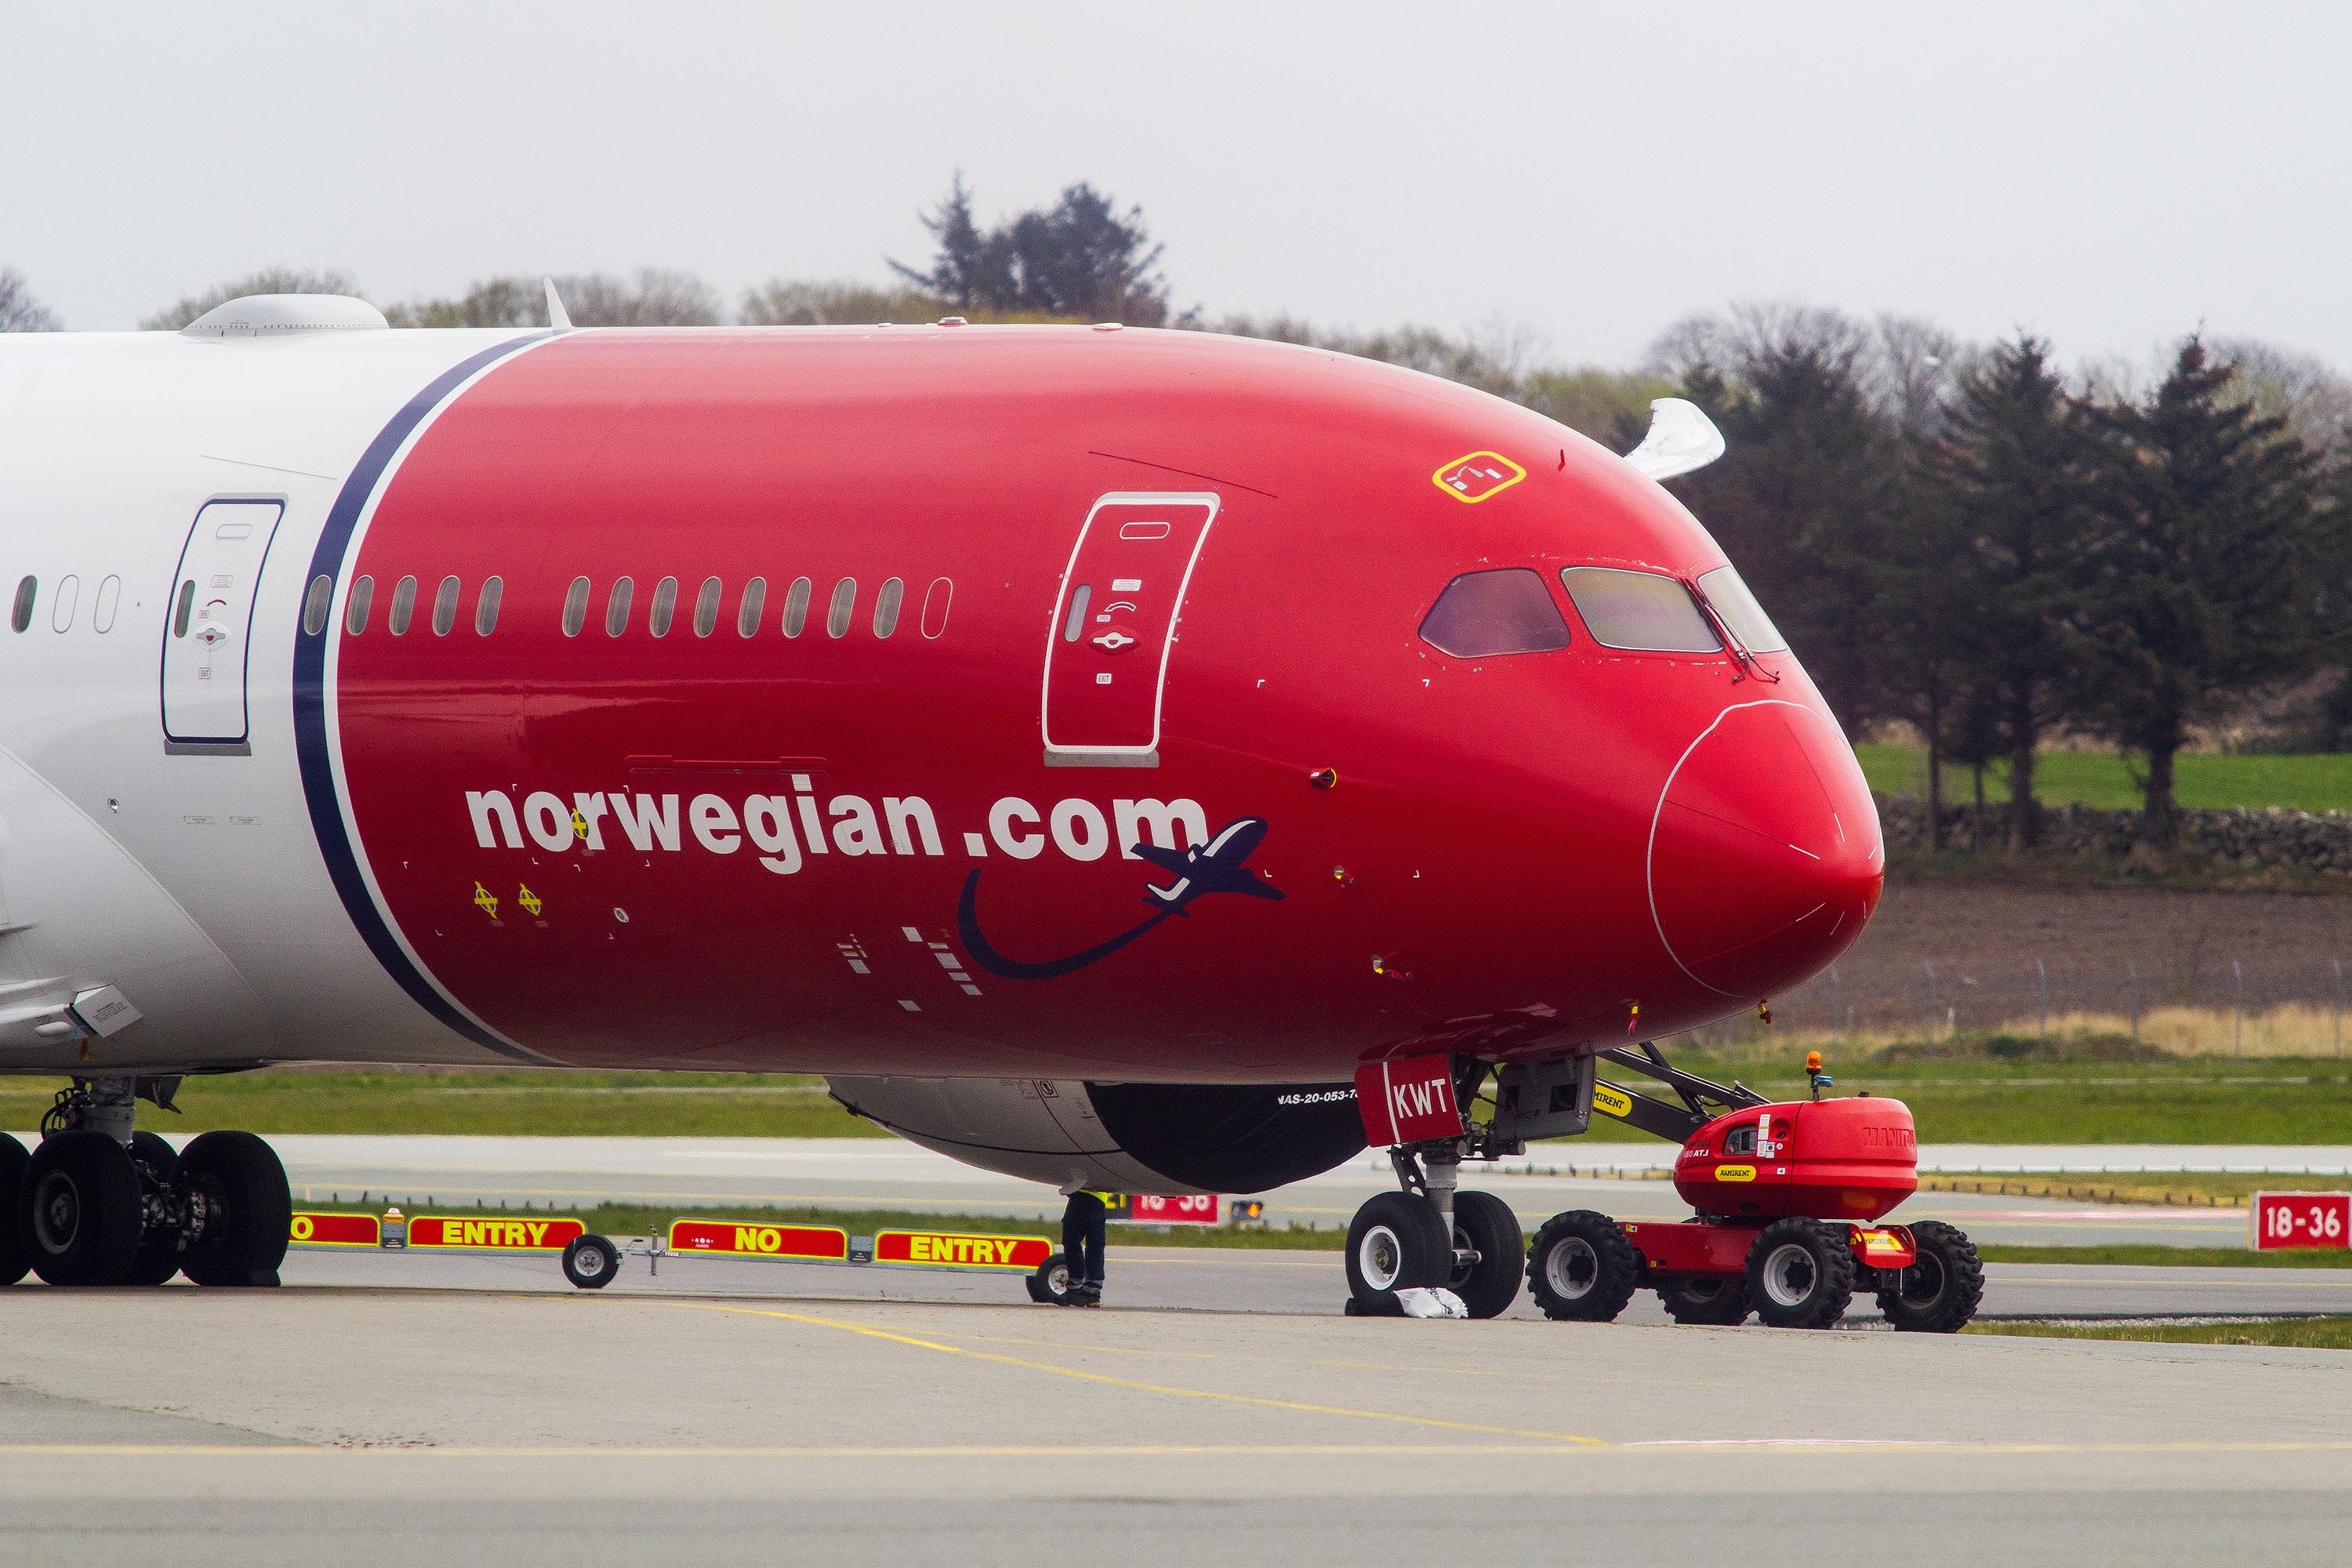 A Norwegian Air passenger aircraft is pictured at Norway's Stavanger Airport in April.